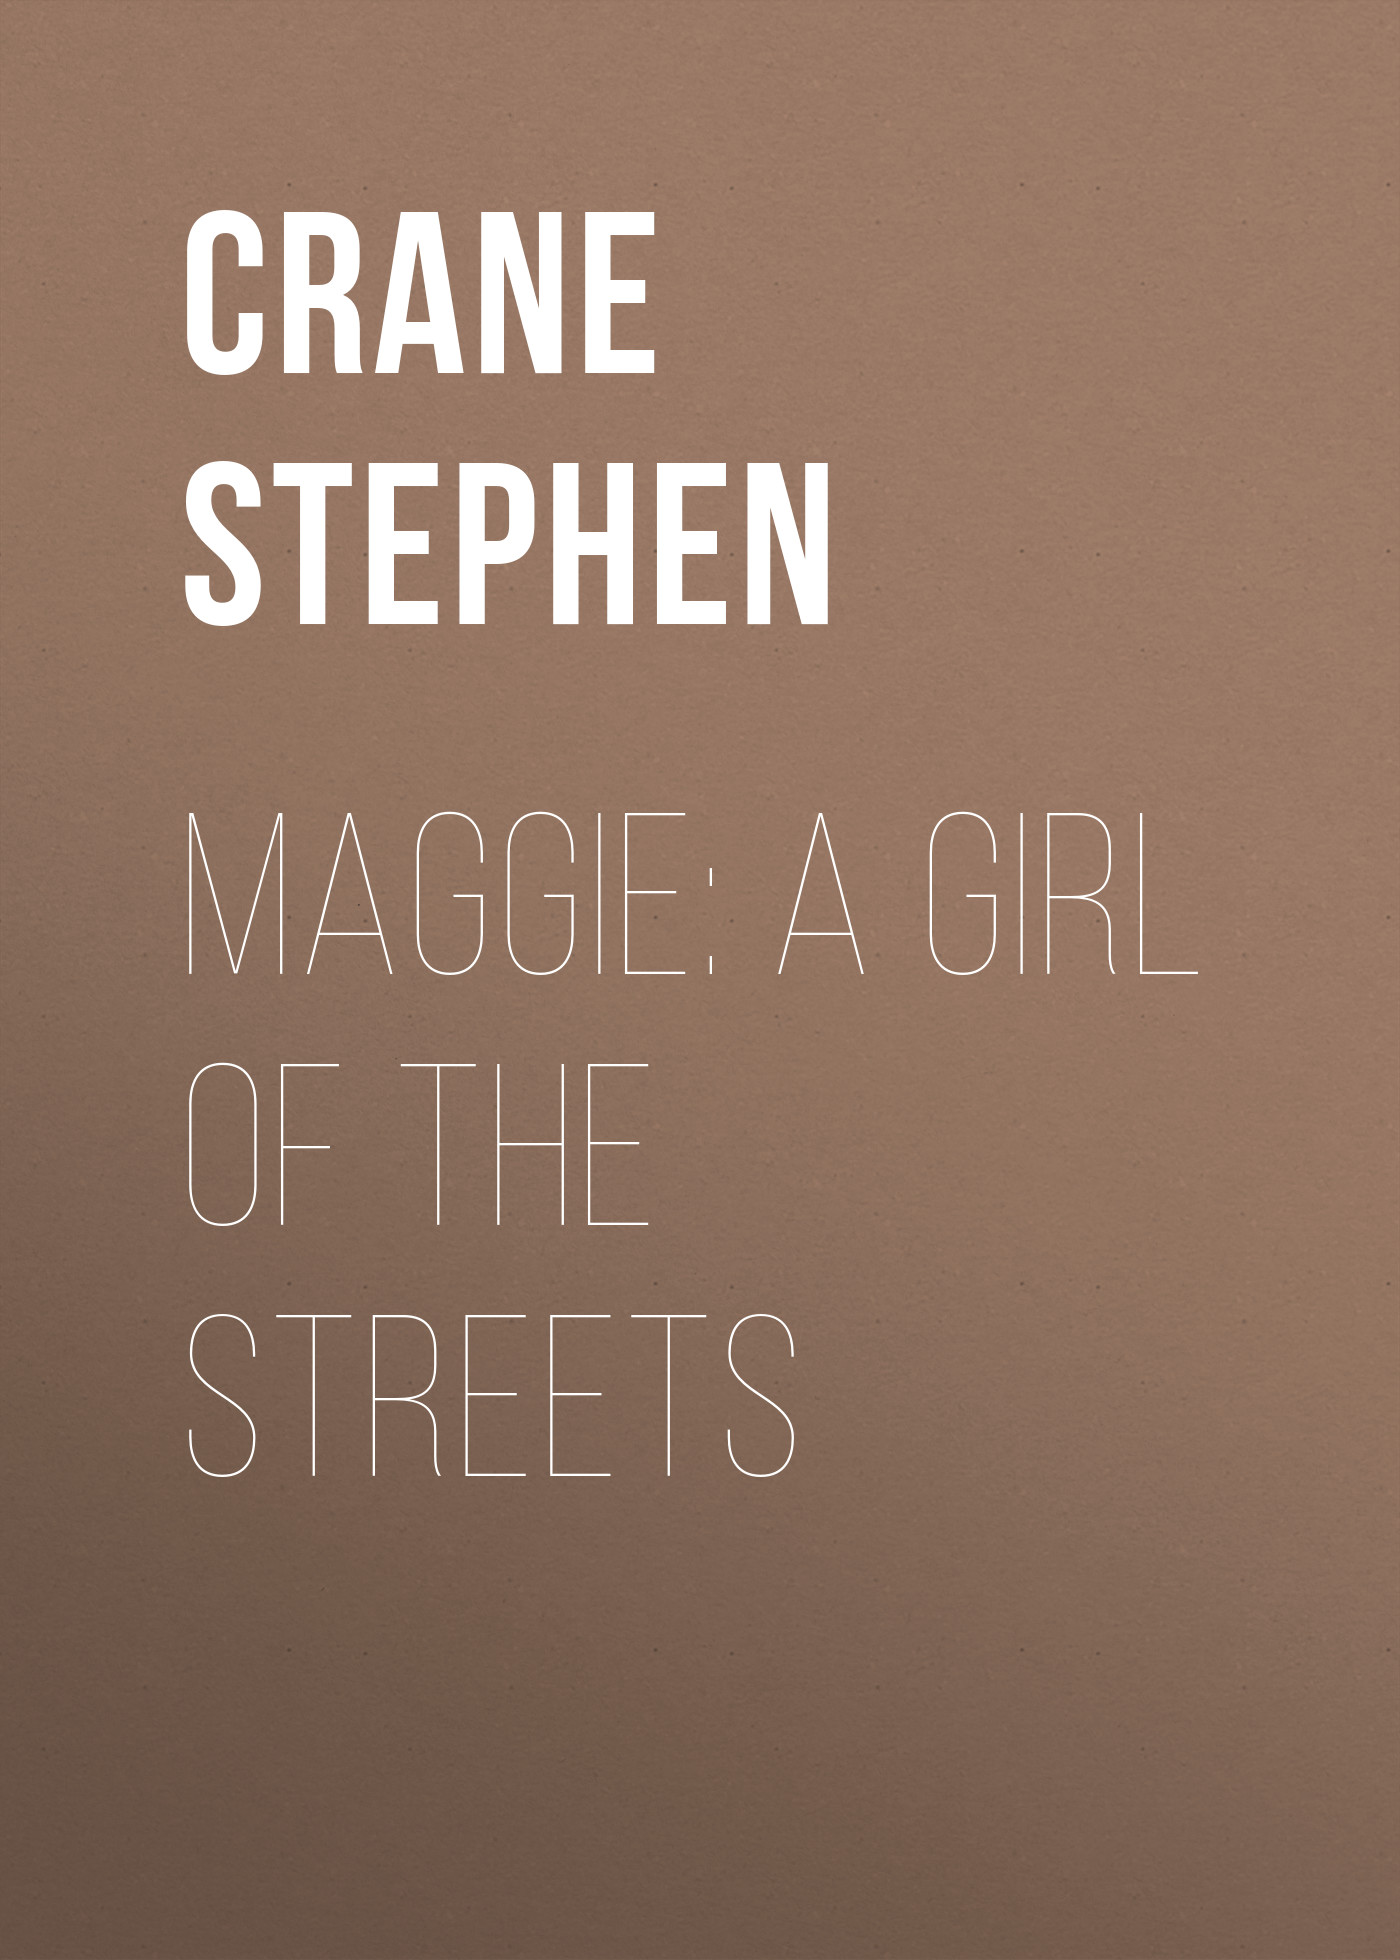 Crane Stephen Maggie: A Girl of the Streets the streets london